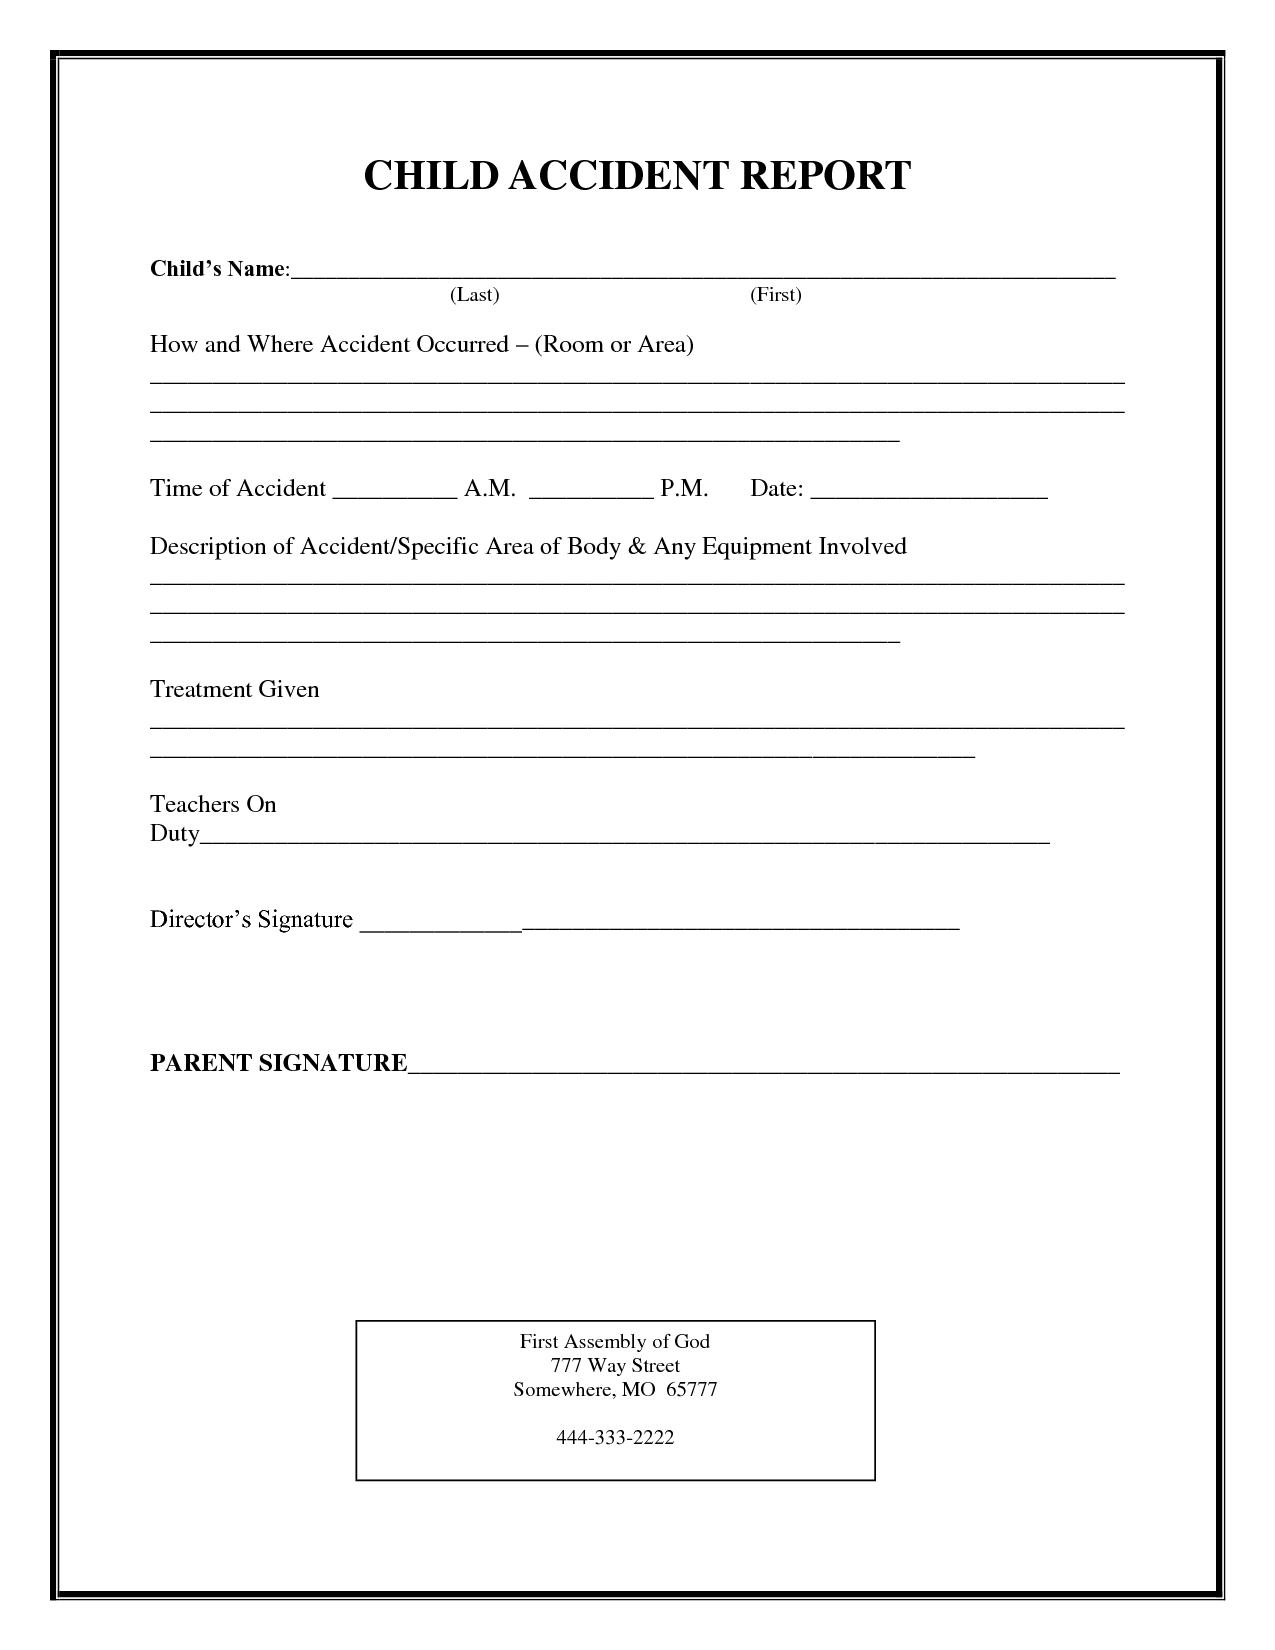 Incident Report Form Child Care | Child Accident Report With Regard To School Incident Report Template